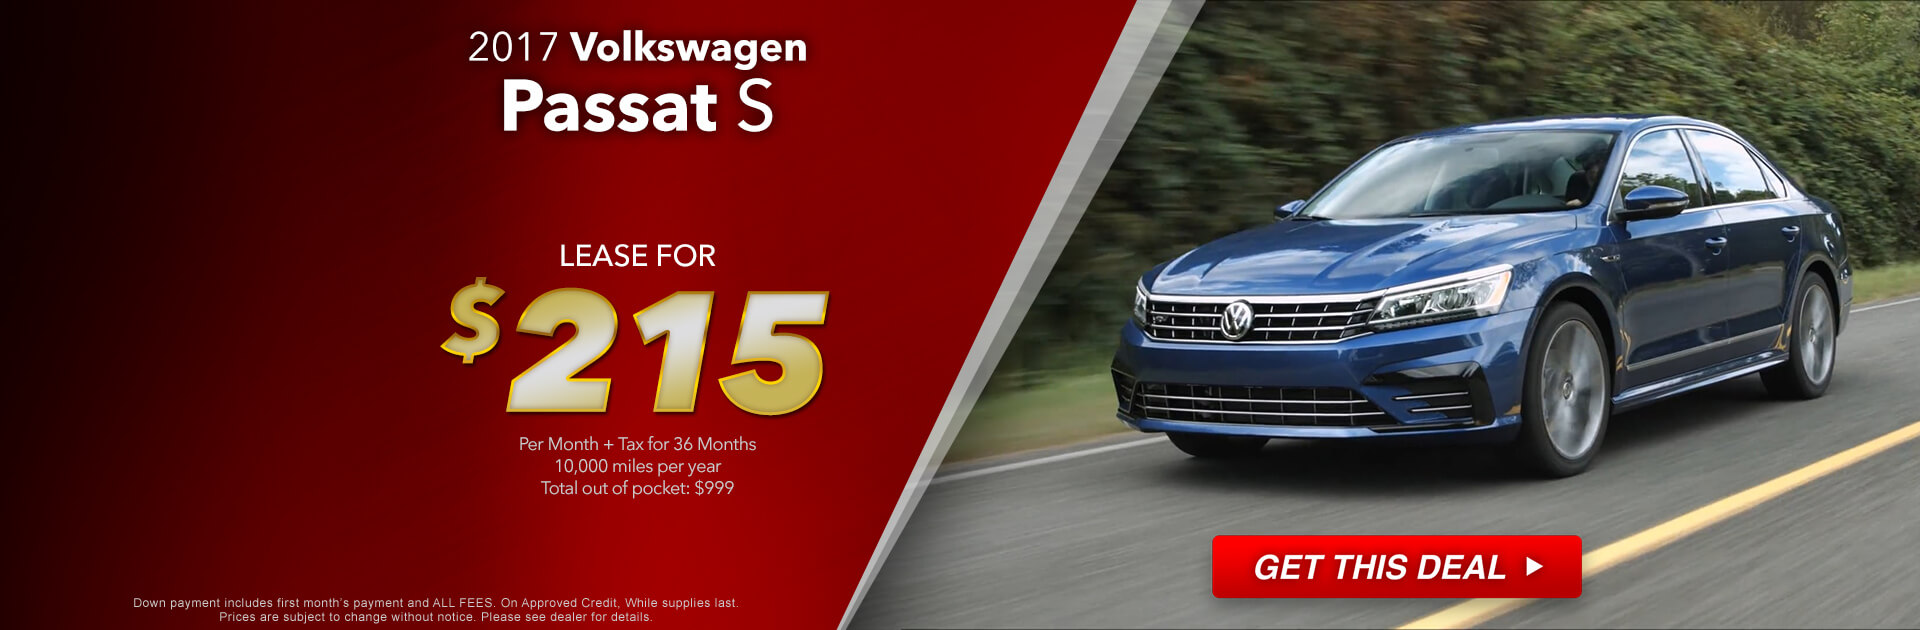 2017 VW Passat Lease